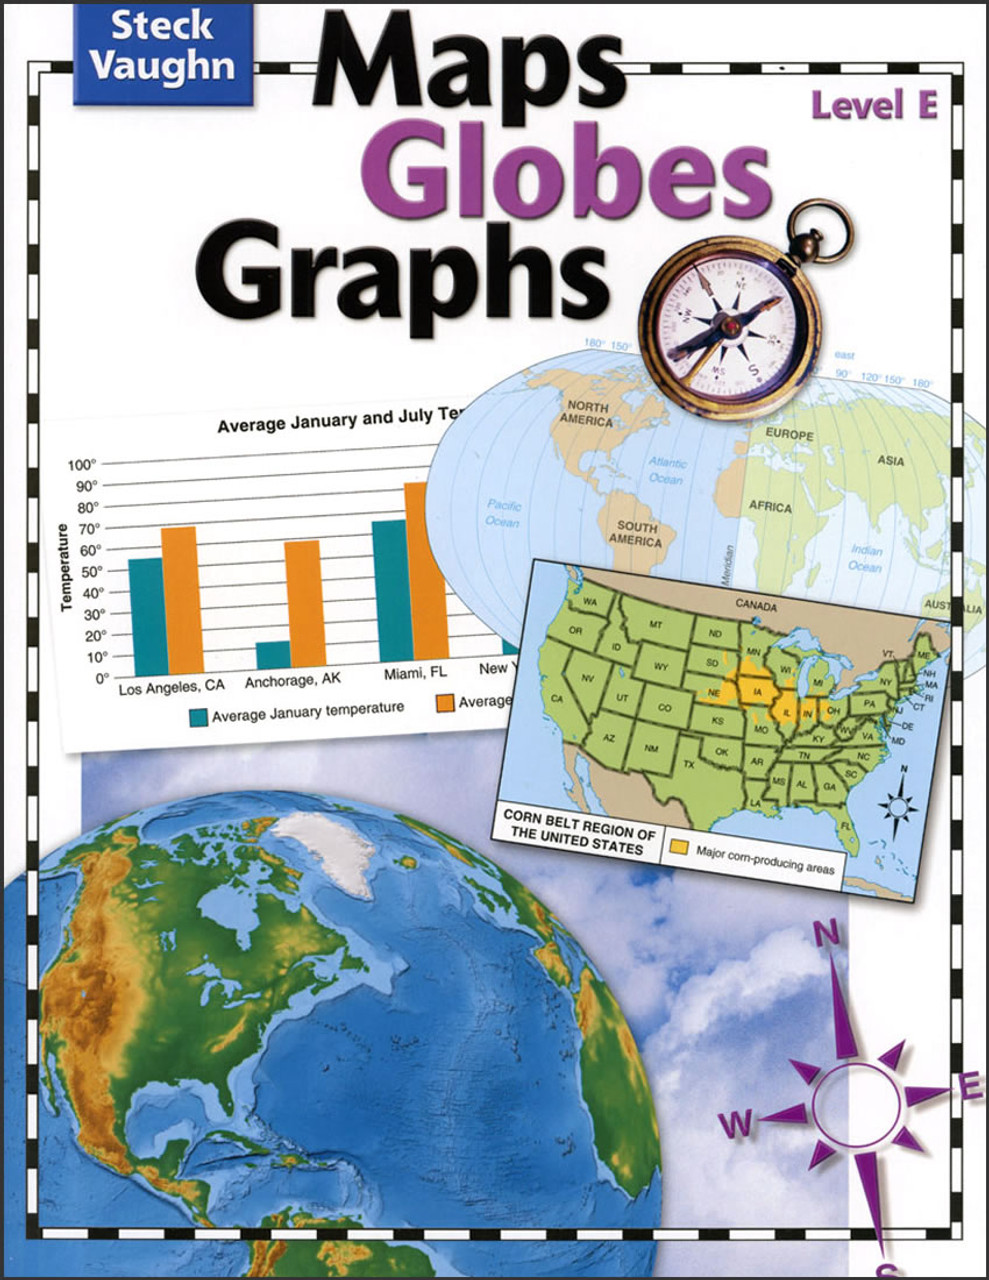 Maps Globes Graphs Level E